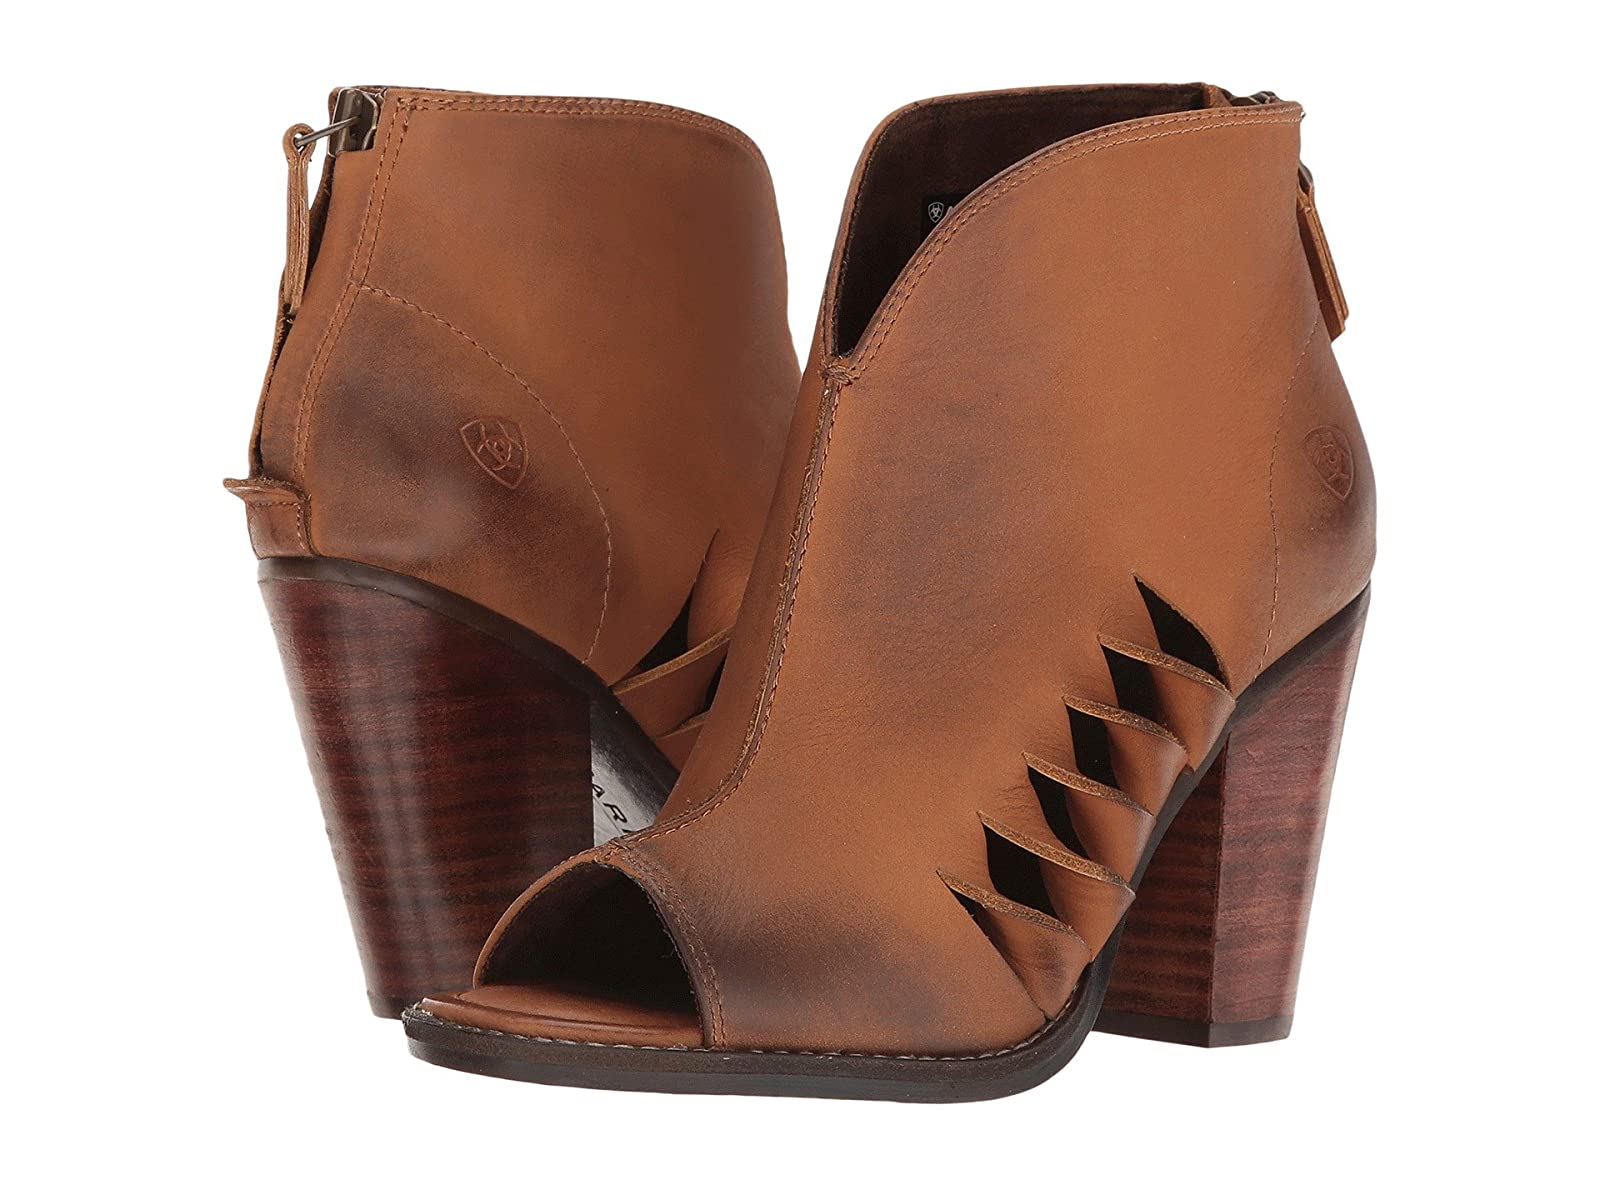 Ariat LindsleyCheap and distinctive eye-catching shoes